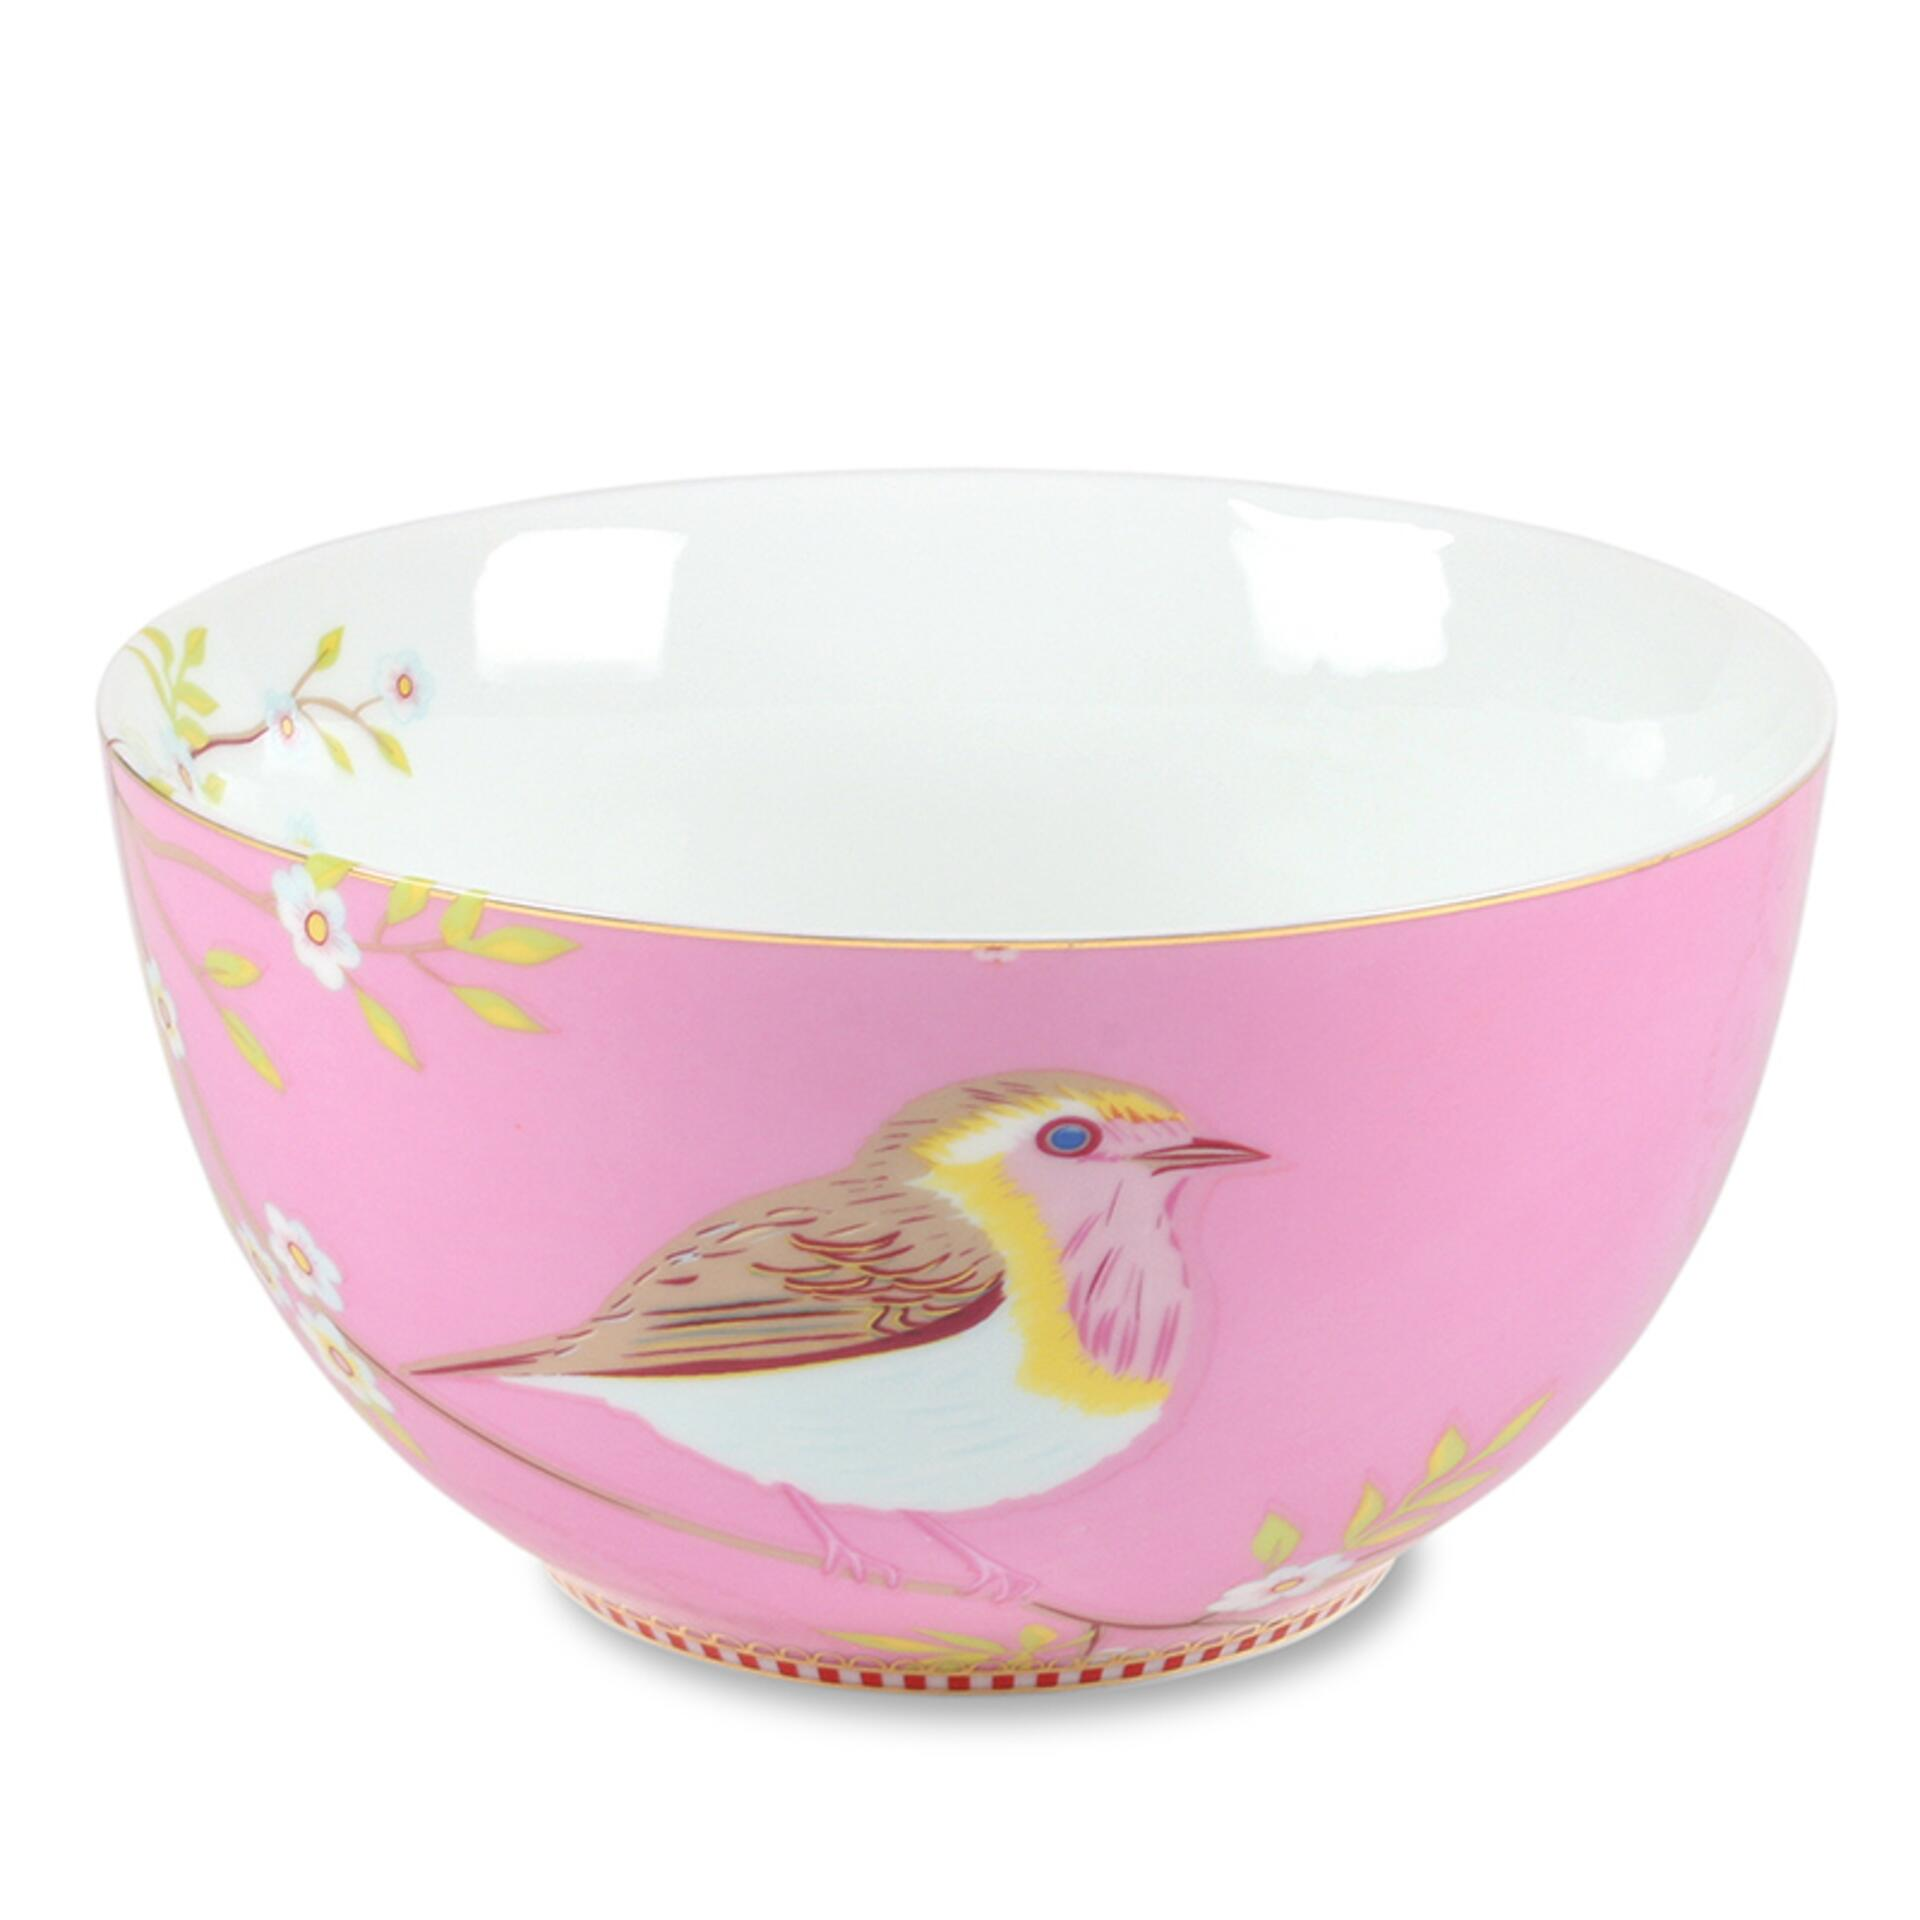 PiP Porzellan Müslischale Early Bird 15 cm Pink